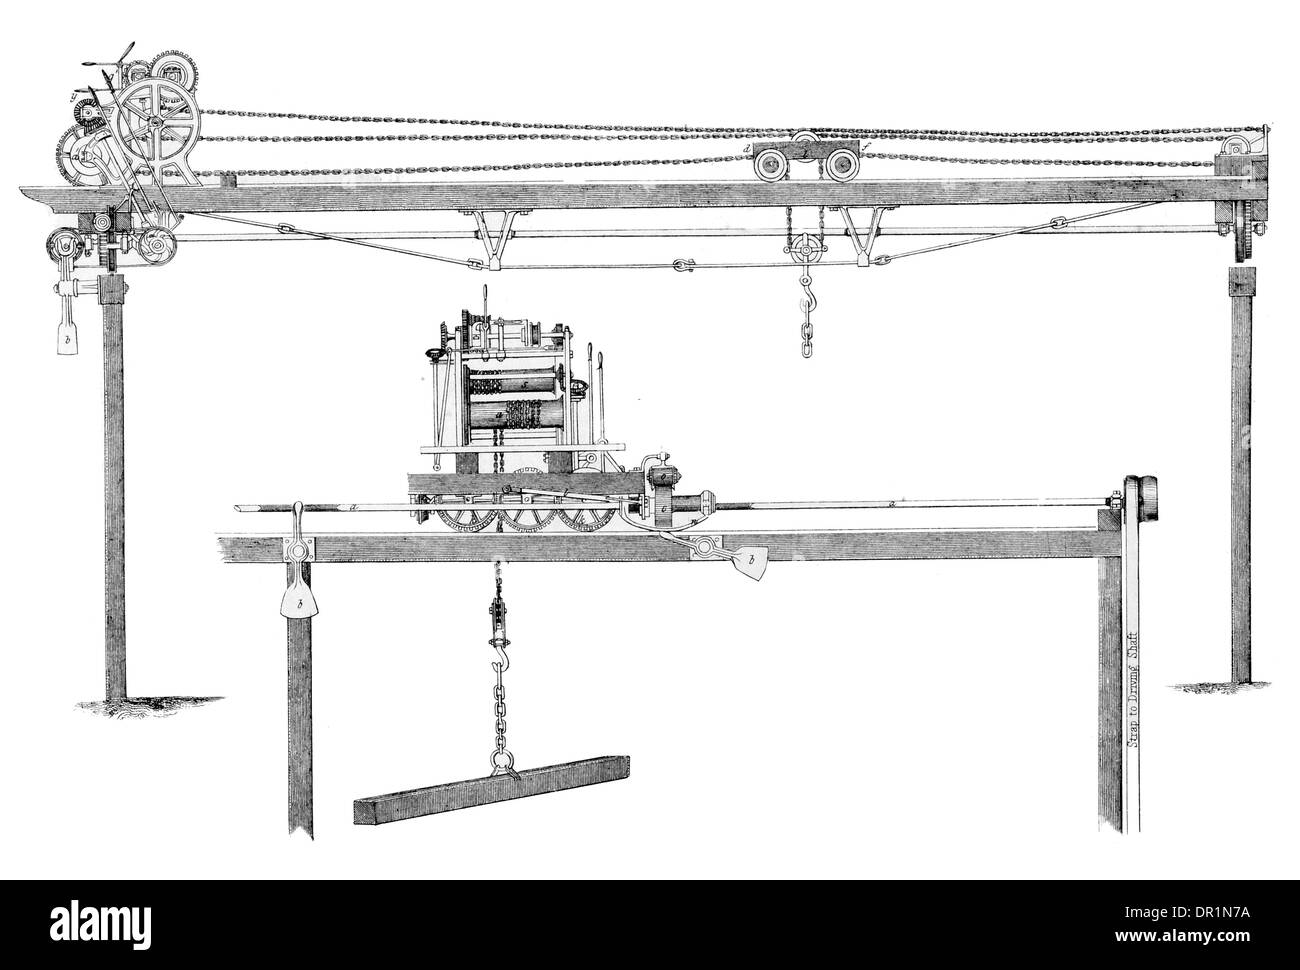 Patent Steam Traveling Crane. Exhibited by M Nicol and Vernon Liverpool. circa 1889 - Stock Image